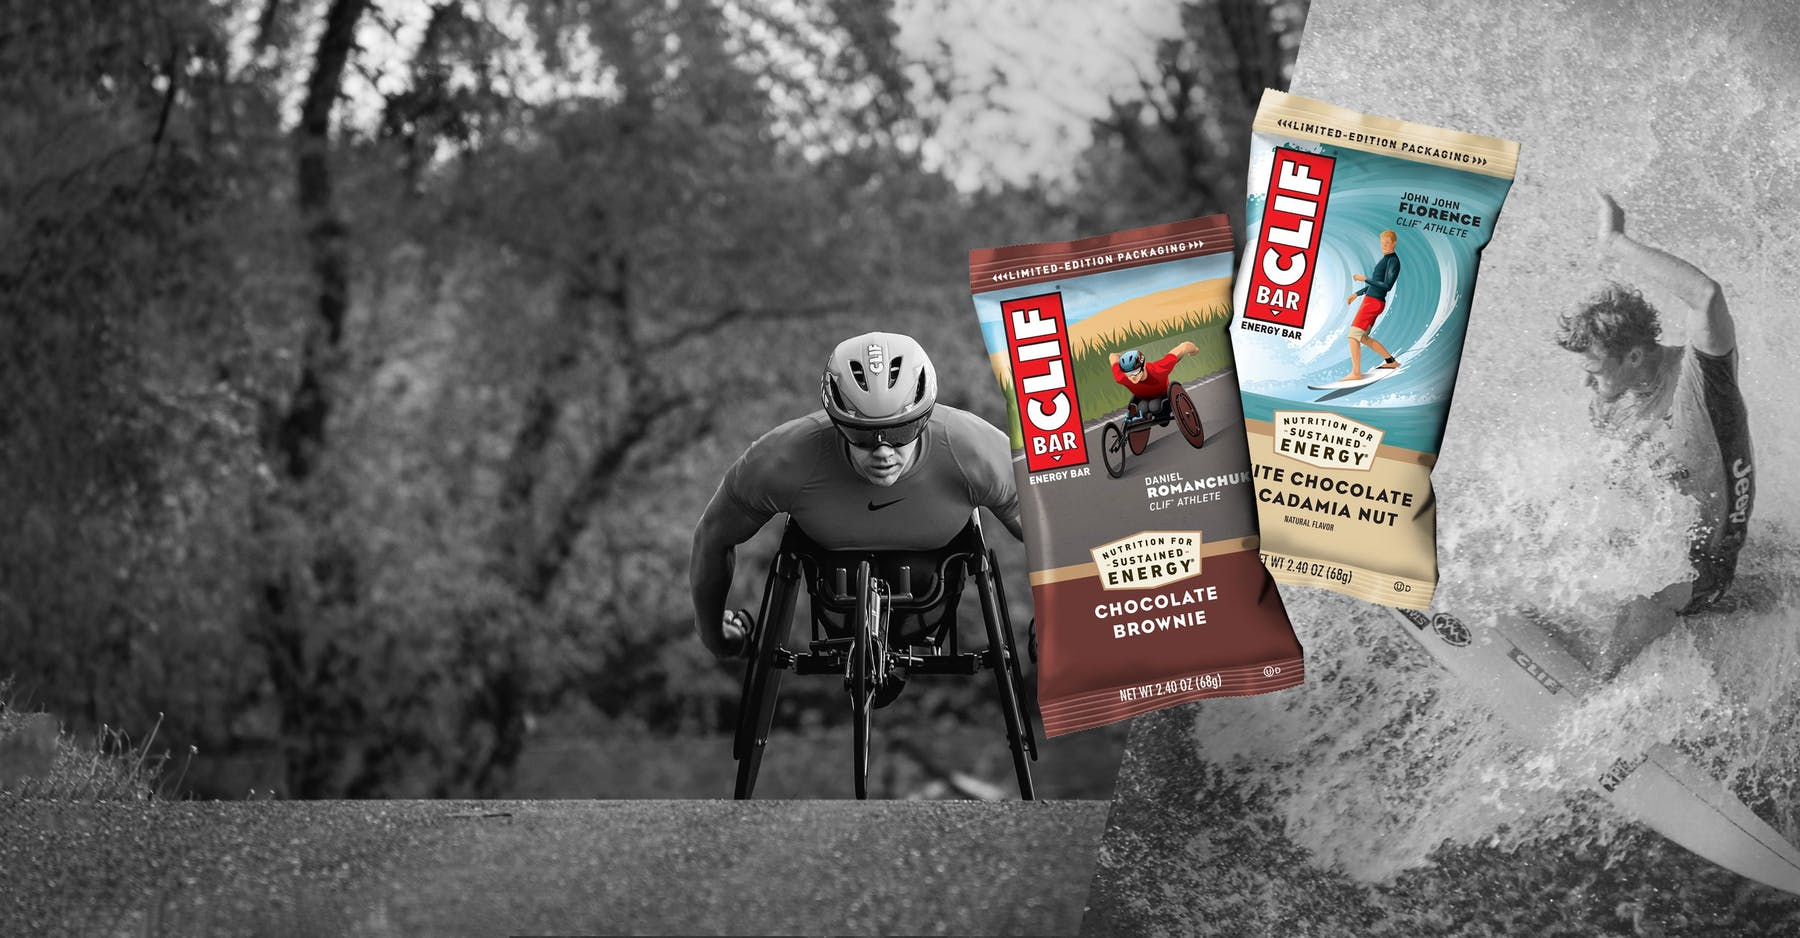 Clif athlete packaging